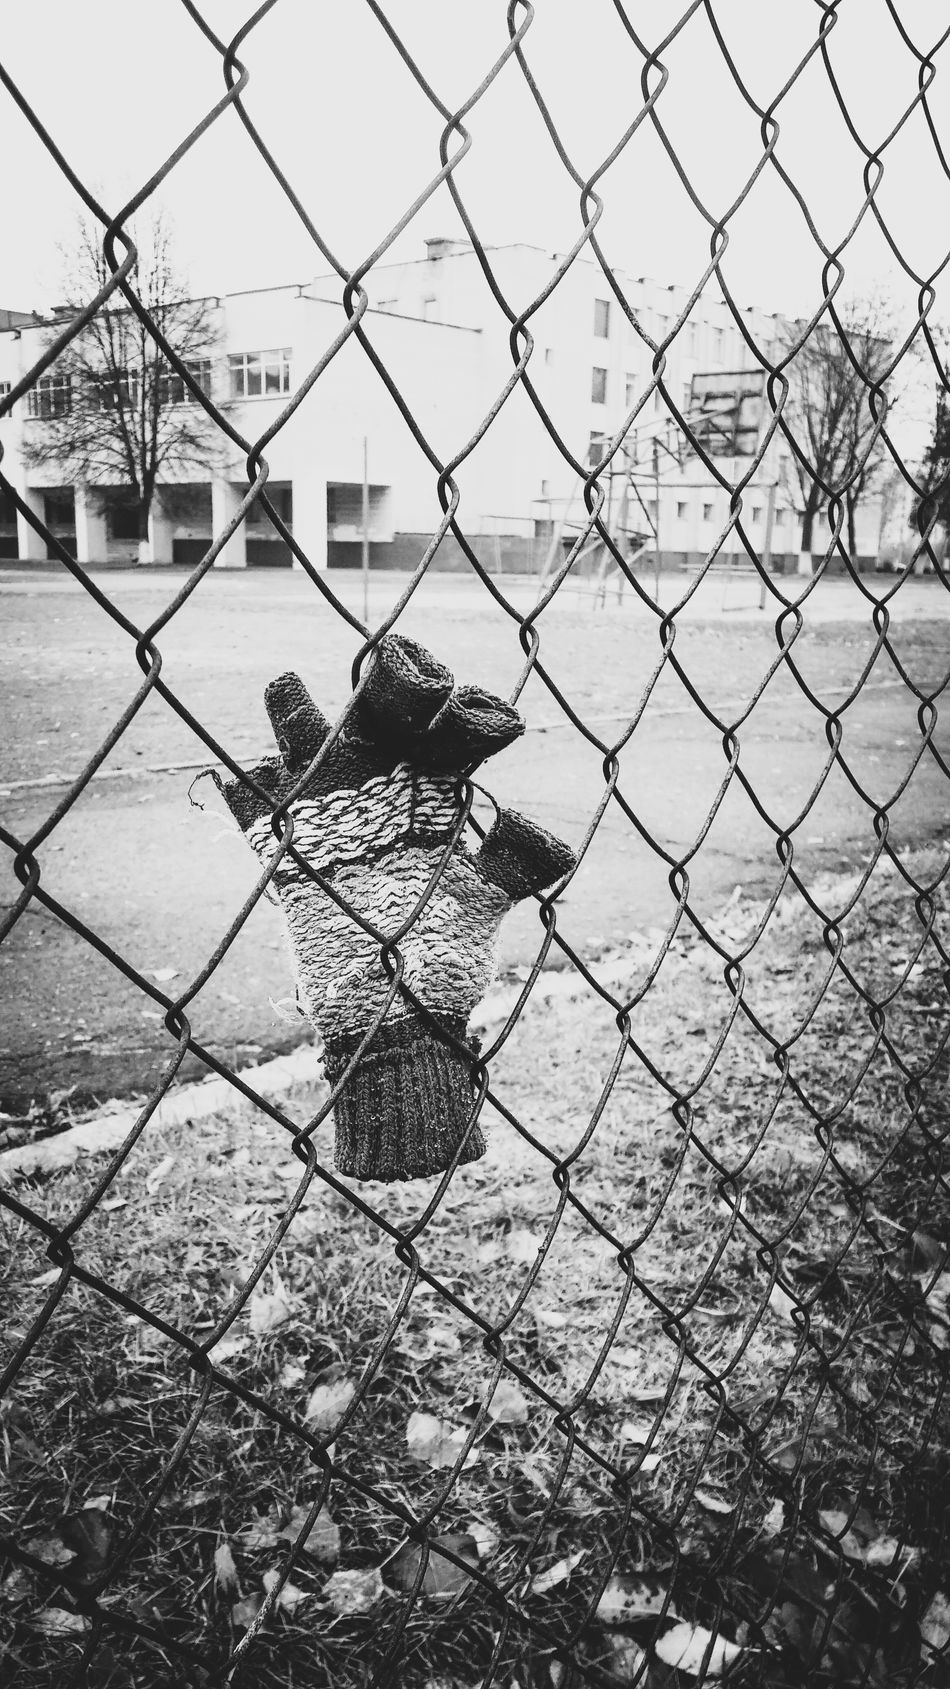 Chainlink Fence Metal Lonely Loneliness Scool Assault Wall Migration Migrating Border Restricted Restricted Area Refugees Net Refugee Protection Belarus Blackandwhite